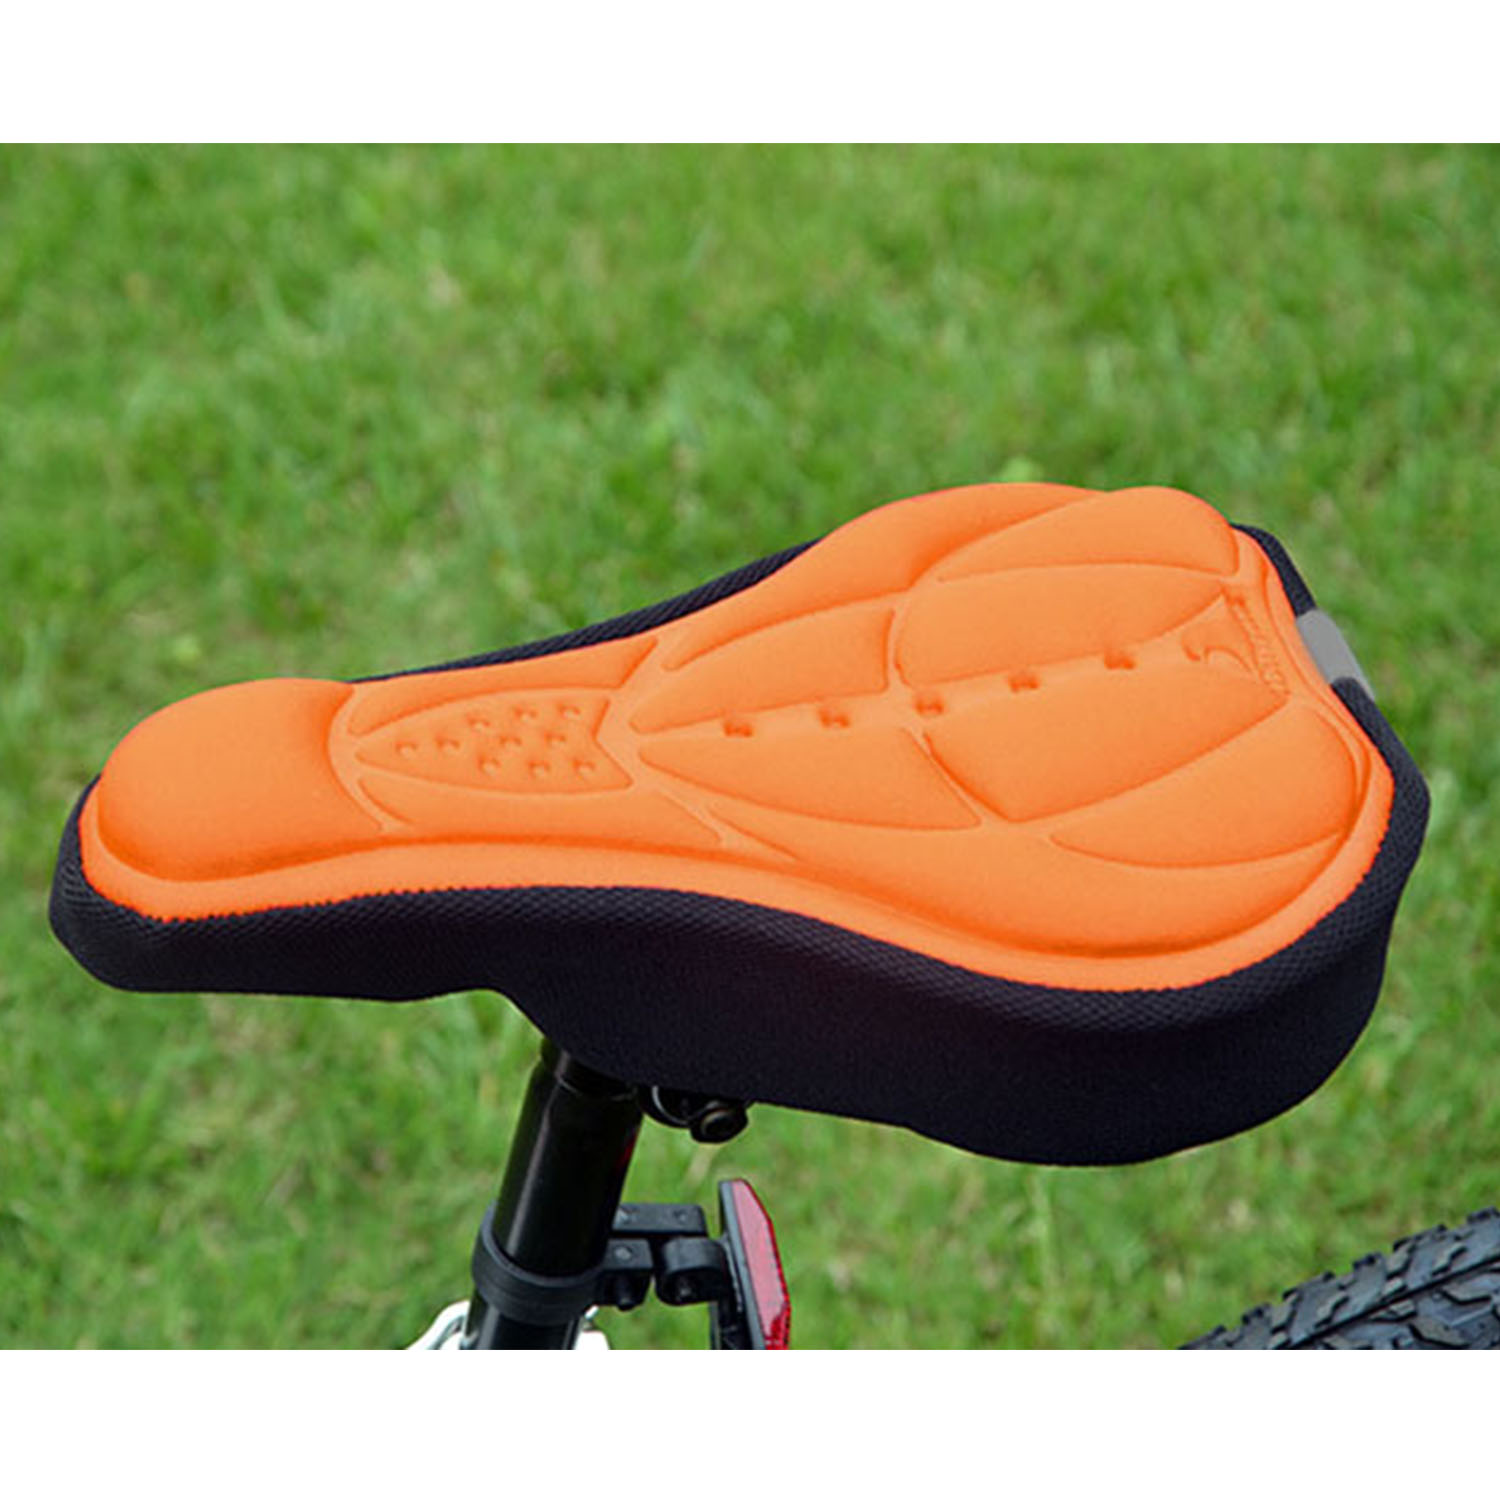 GPCT Bike Seat Cushion Cover